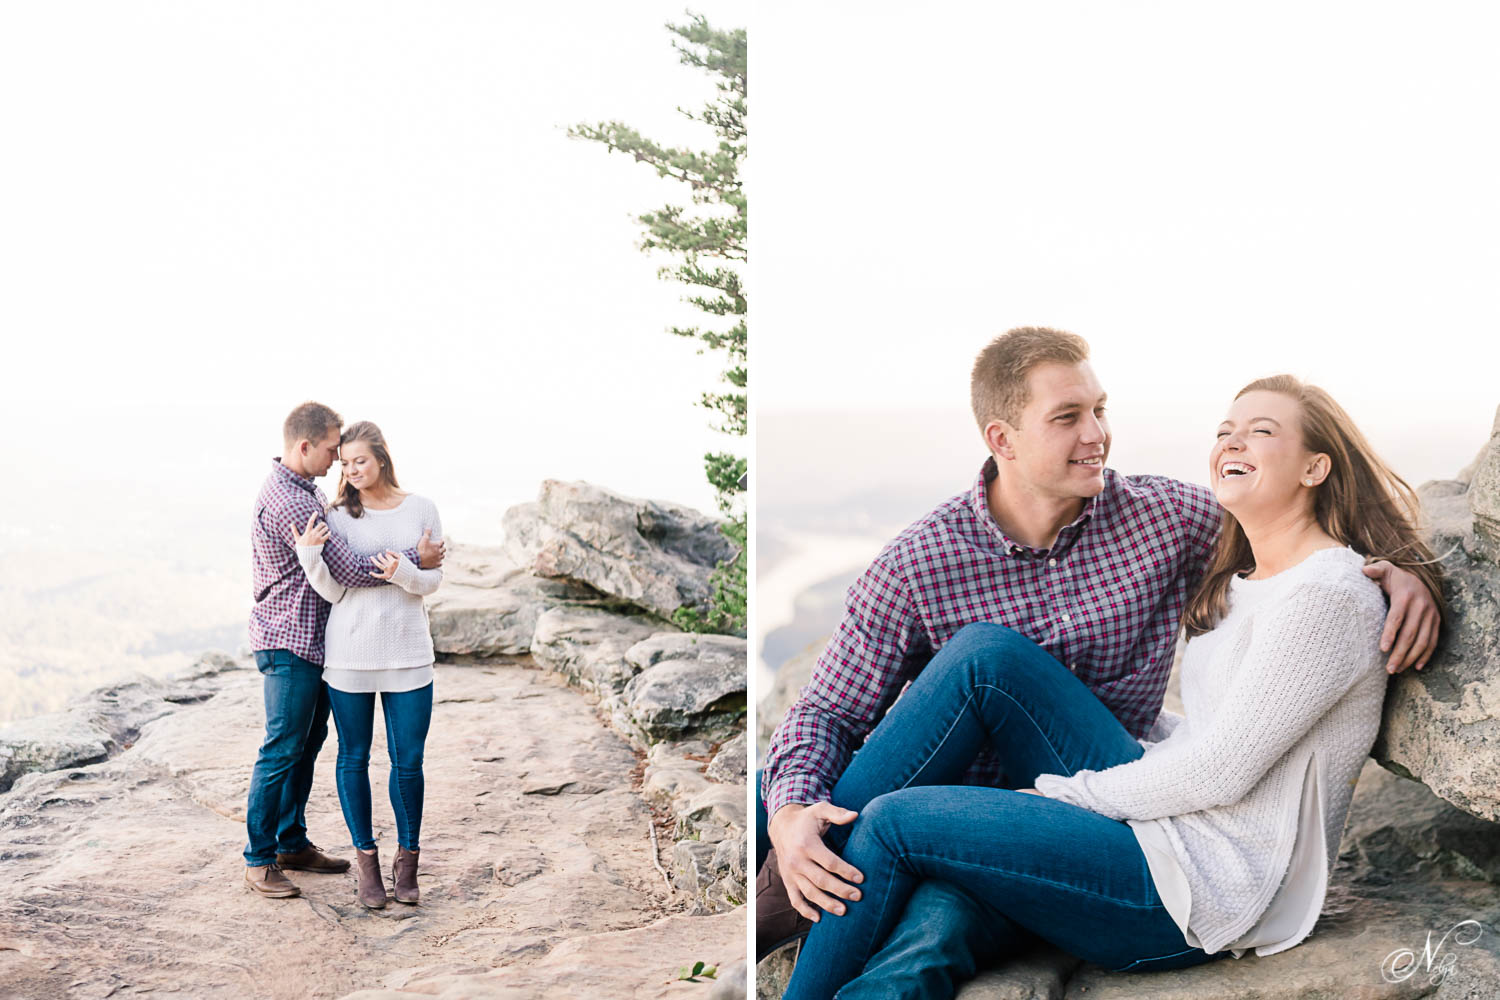 engaged couple laughing and sitting on uncomfortable rocks during a hazy morning in Chattanooga TN